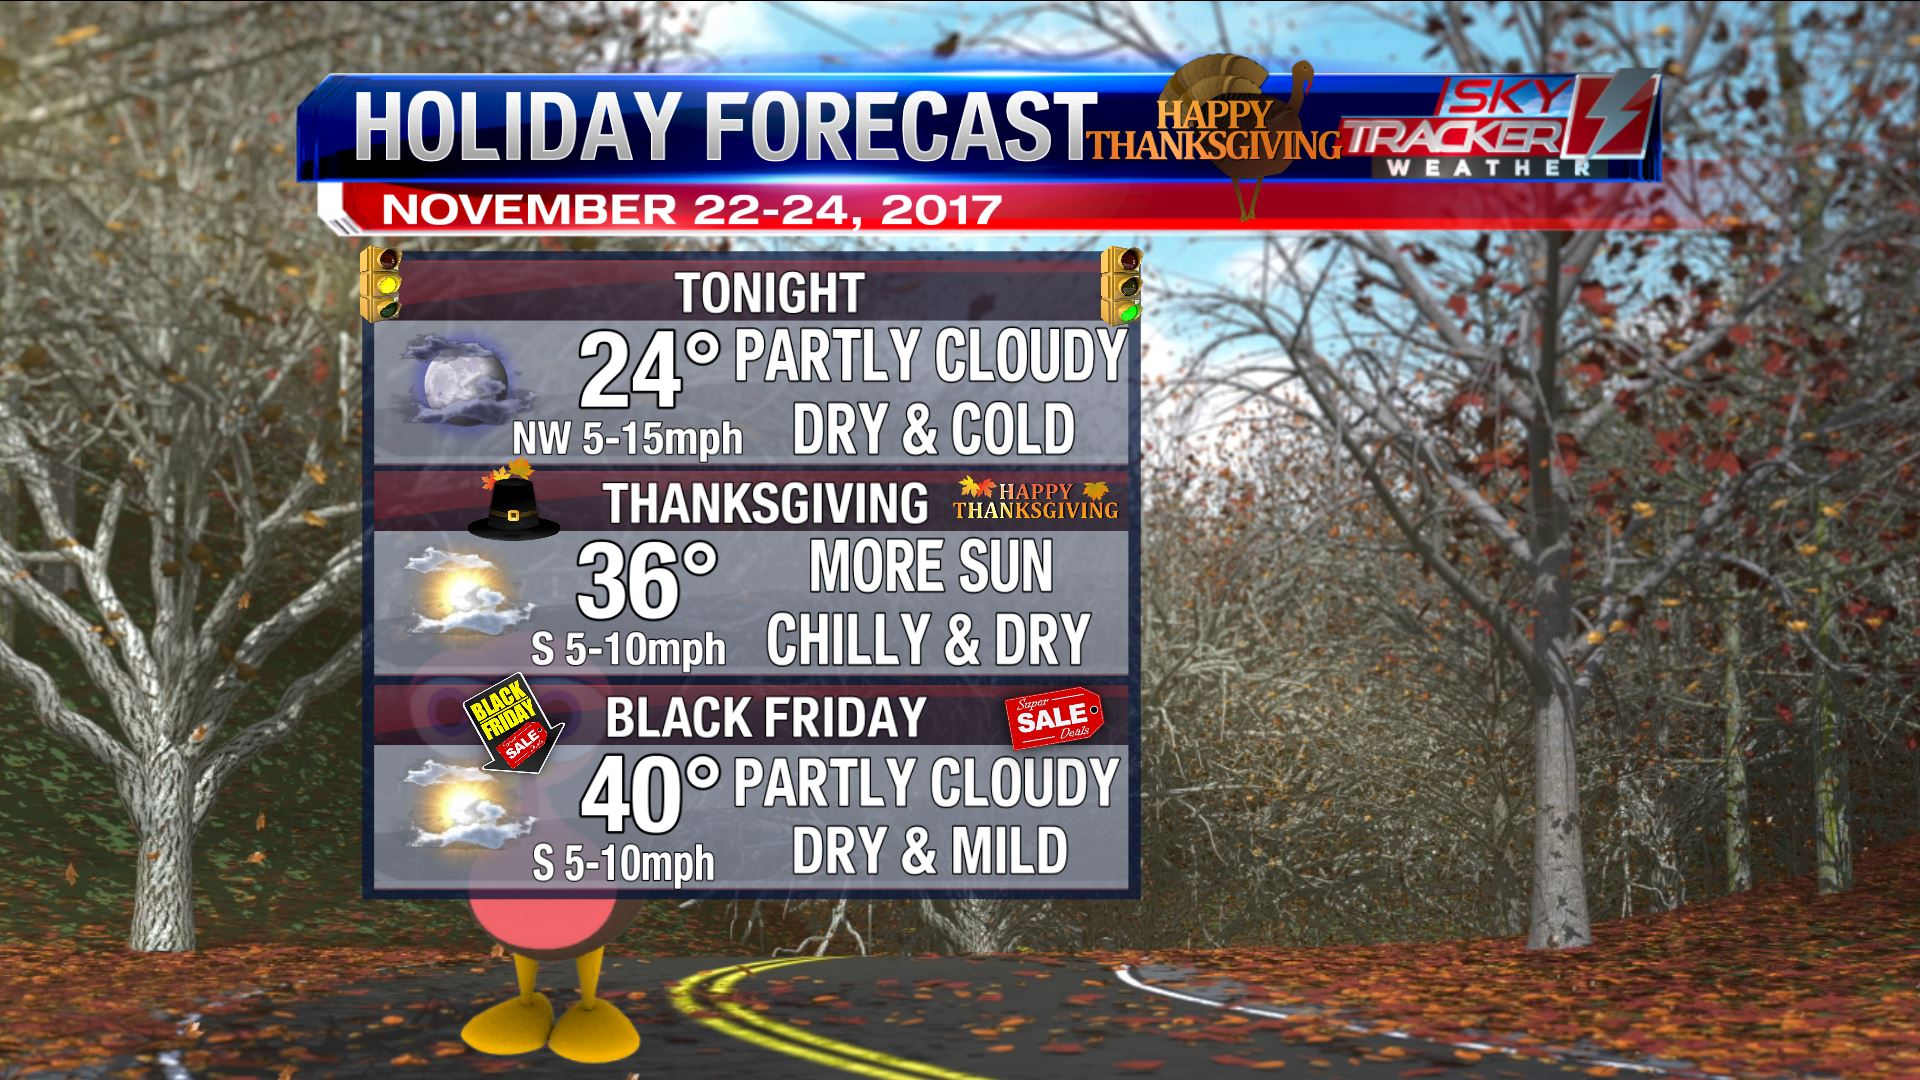 Holiday Forecast as of November 22 2017